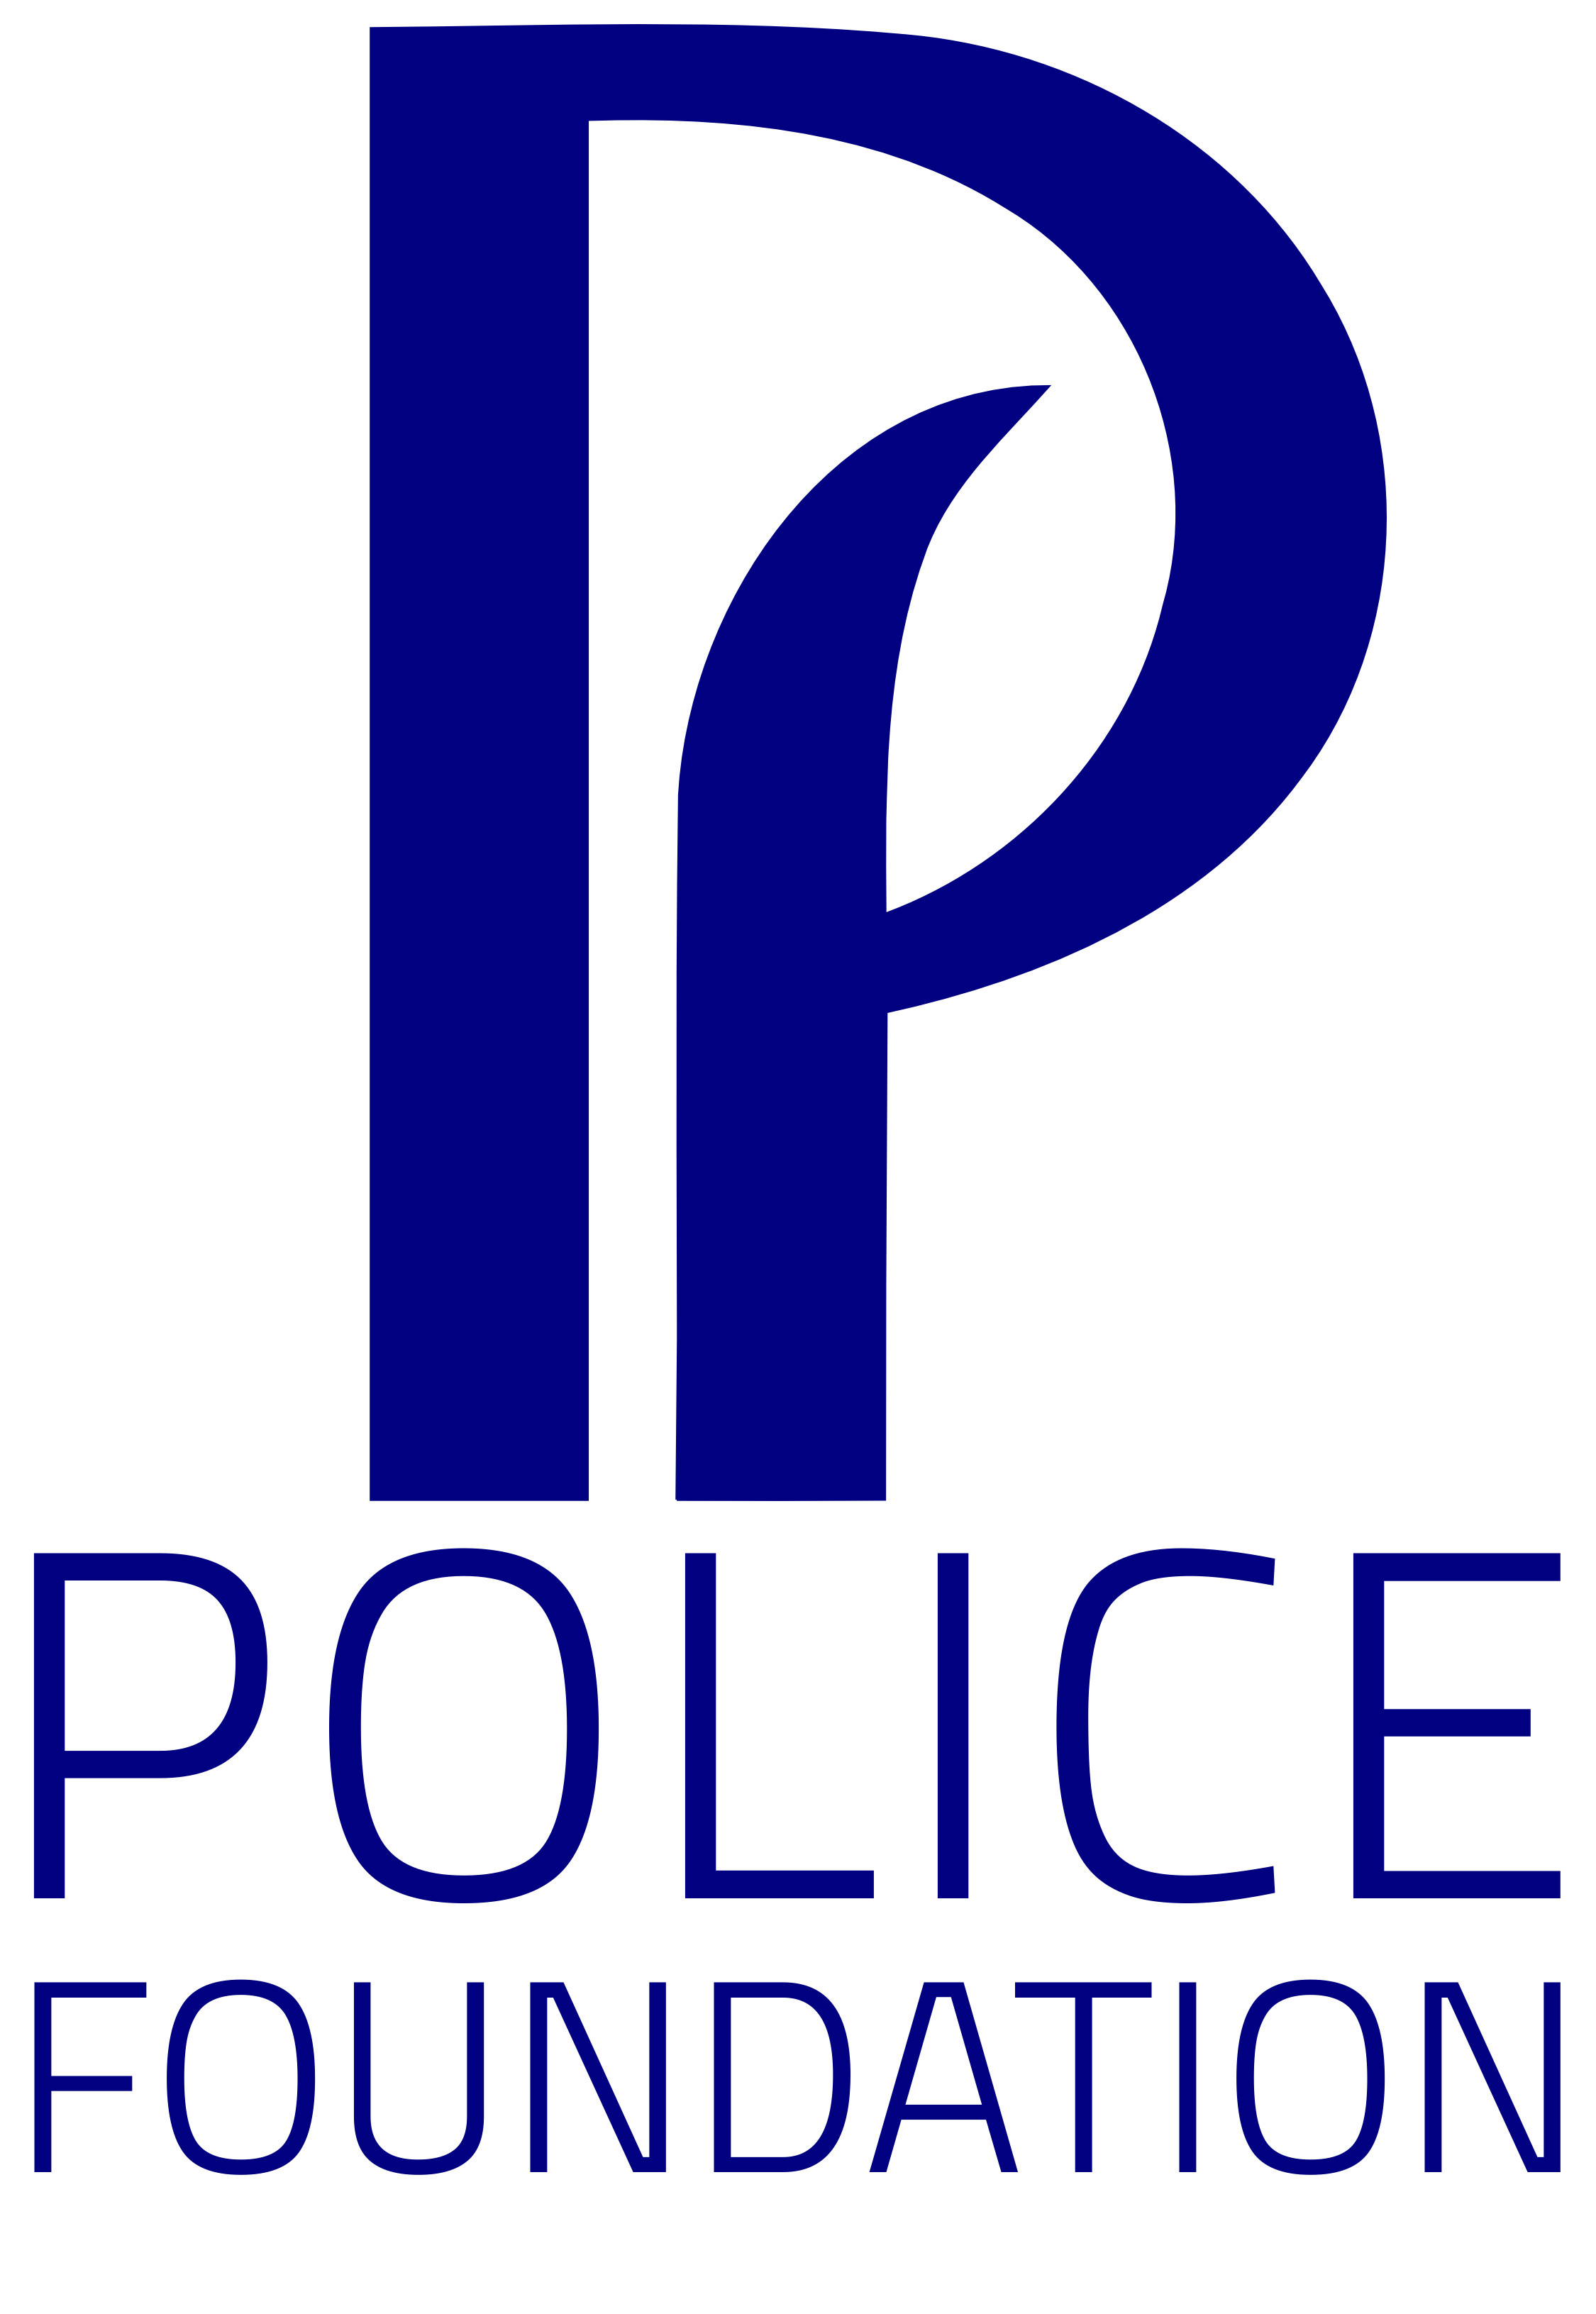 police systems in the united states Police function police systems police organization  police systems  the ins polices the flow of immigrants into the united states.